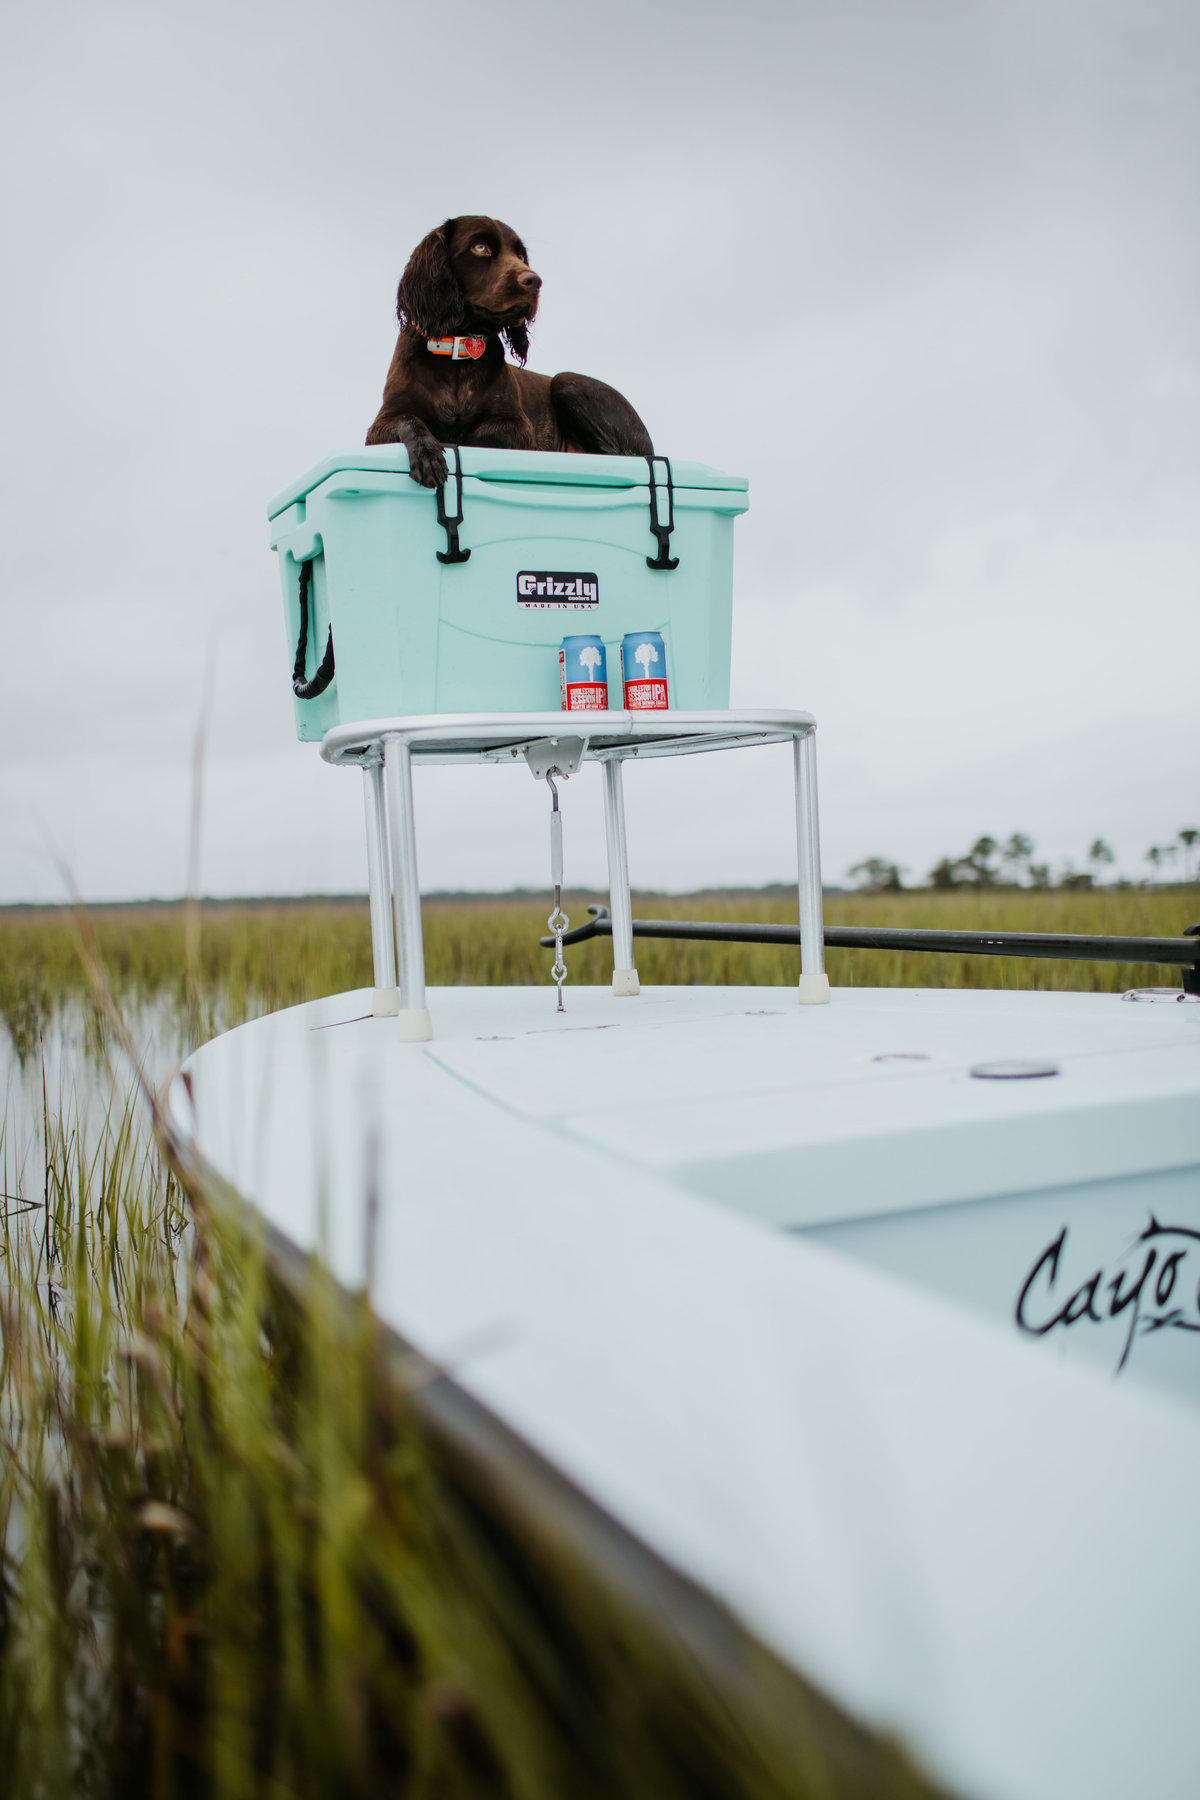 Charleston-SC-Grizzly-Cooler-flyfishing-lifestyle-brand-photography-1